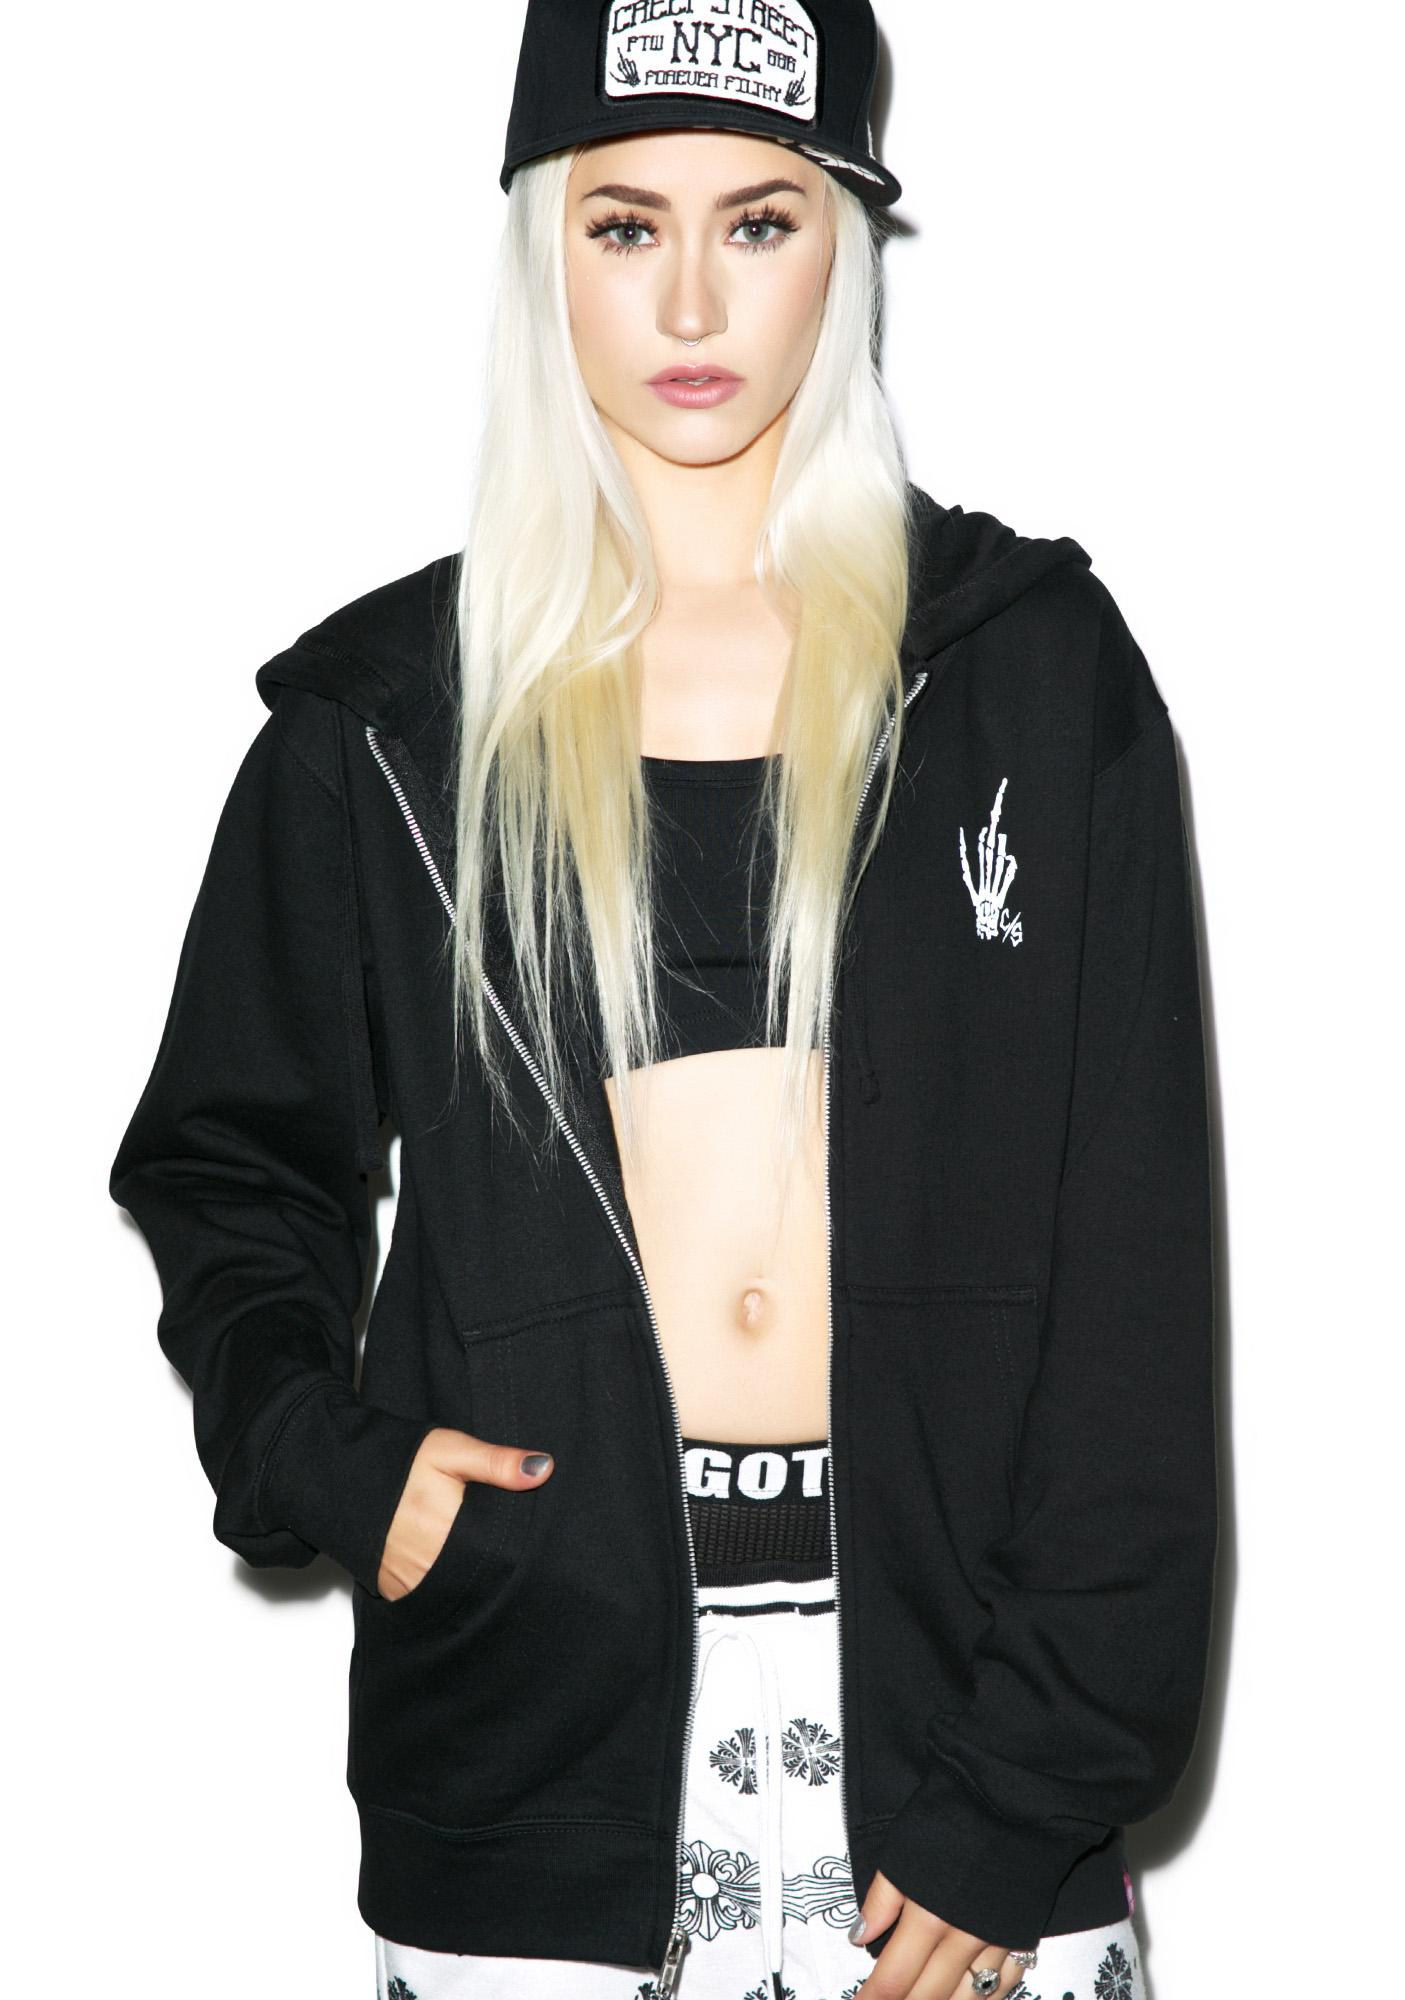 Creep Street Lip Service Hoody